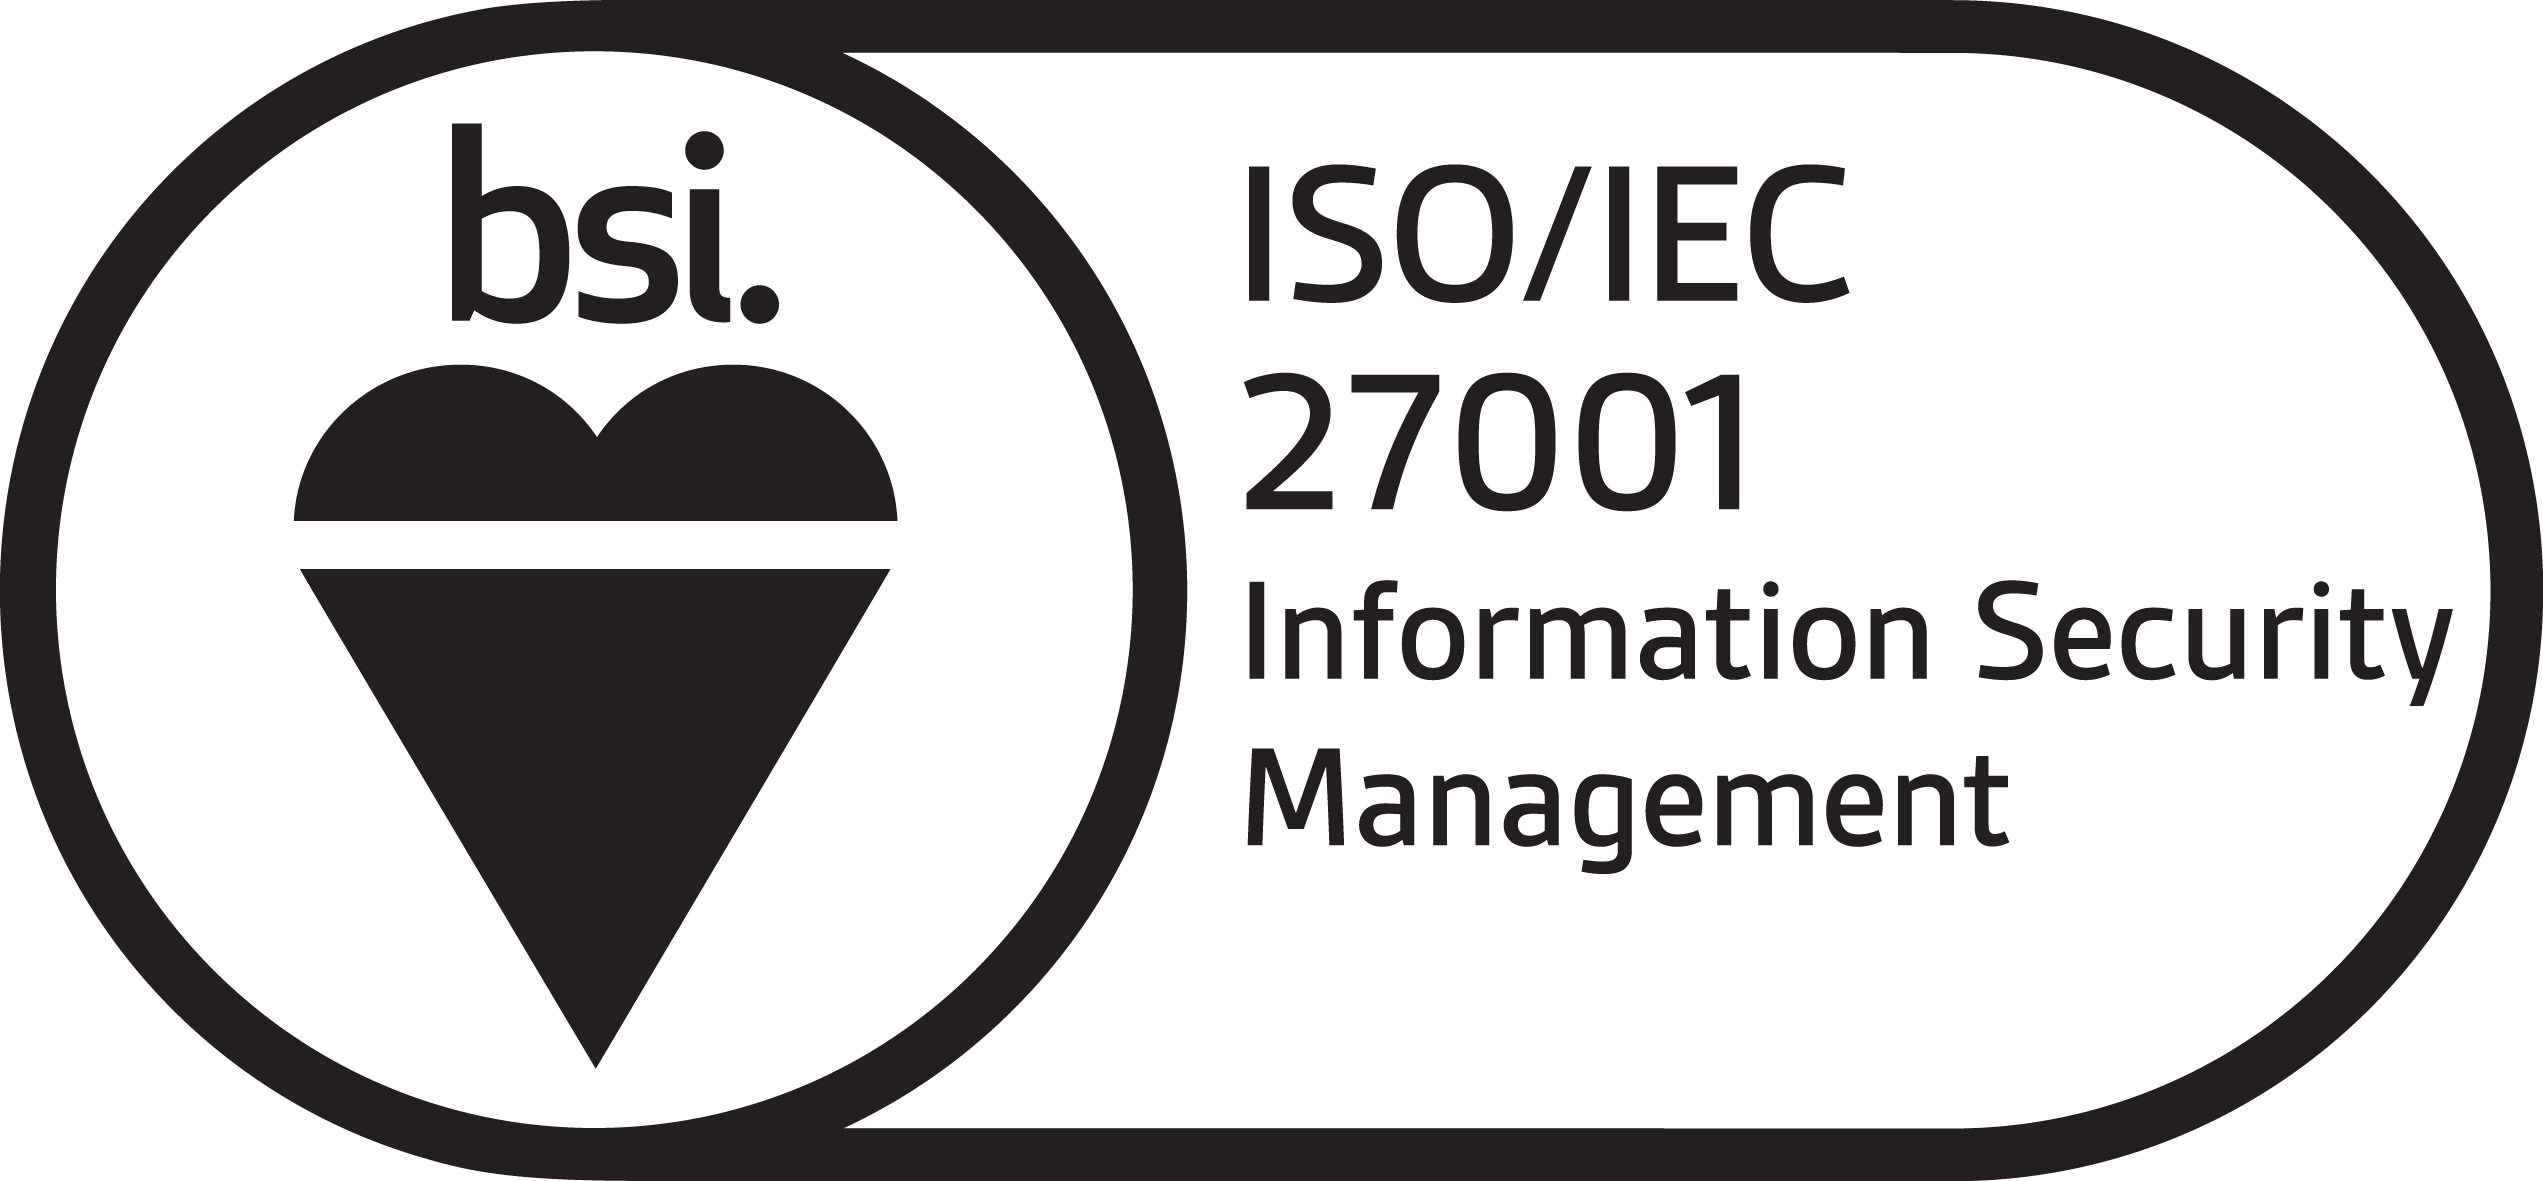 Certification held by ICA Commercial Services Ltd: IS 702170